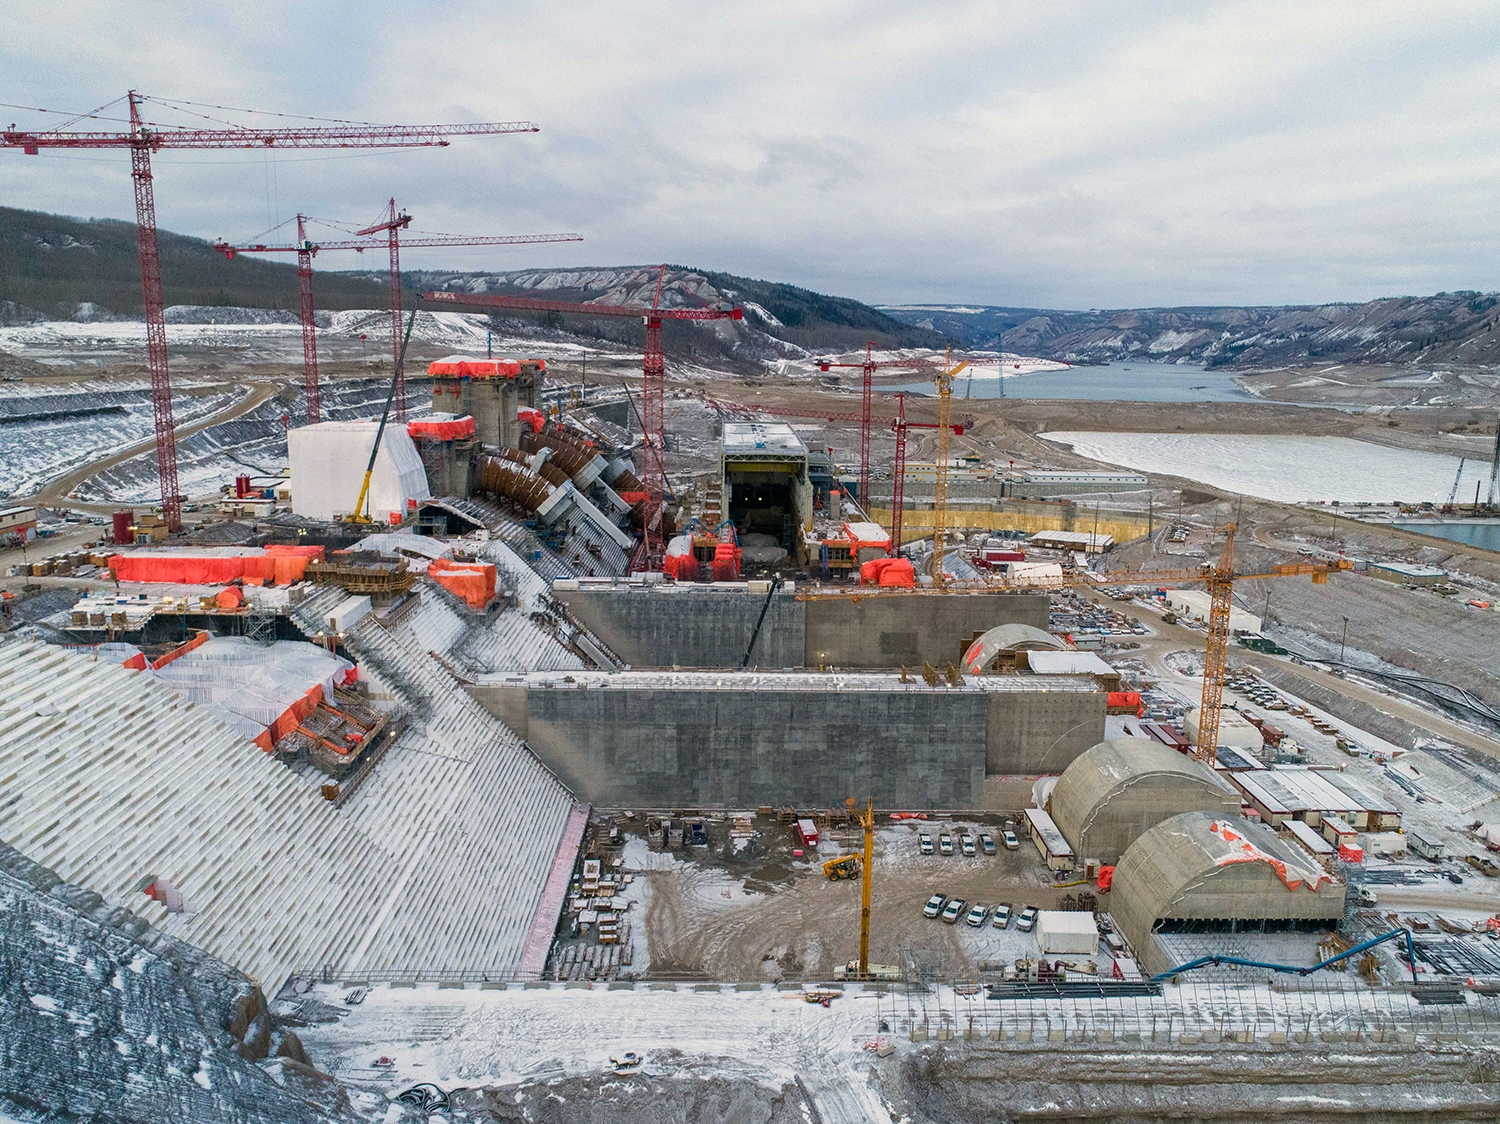 The slippery slope of Site C